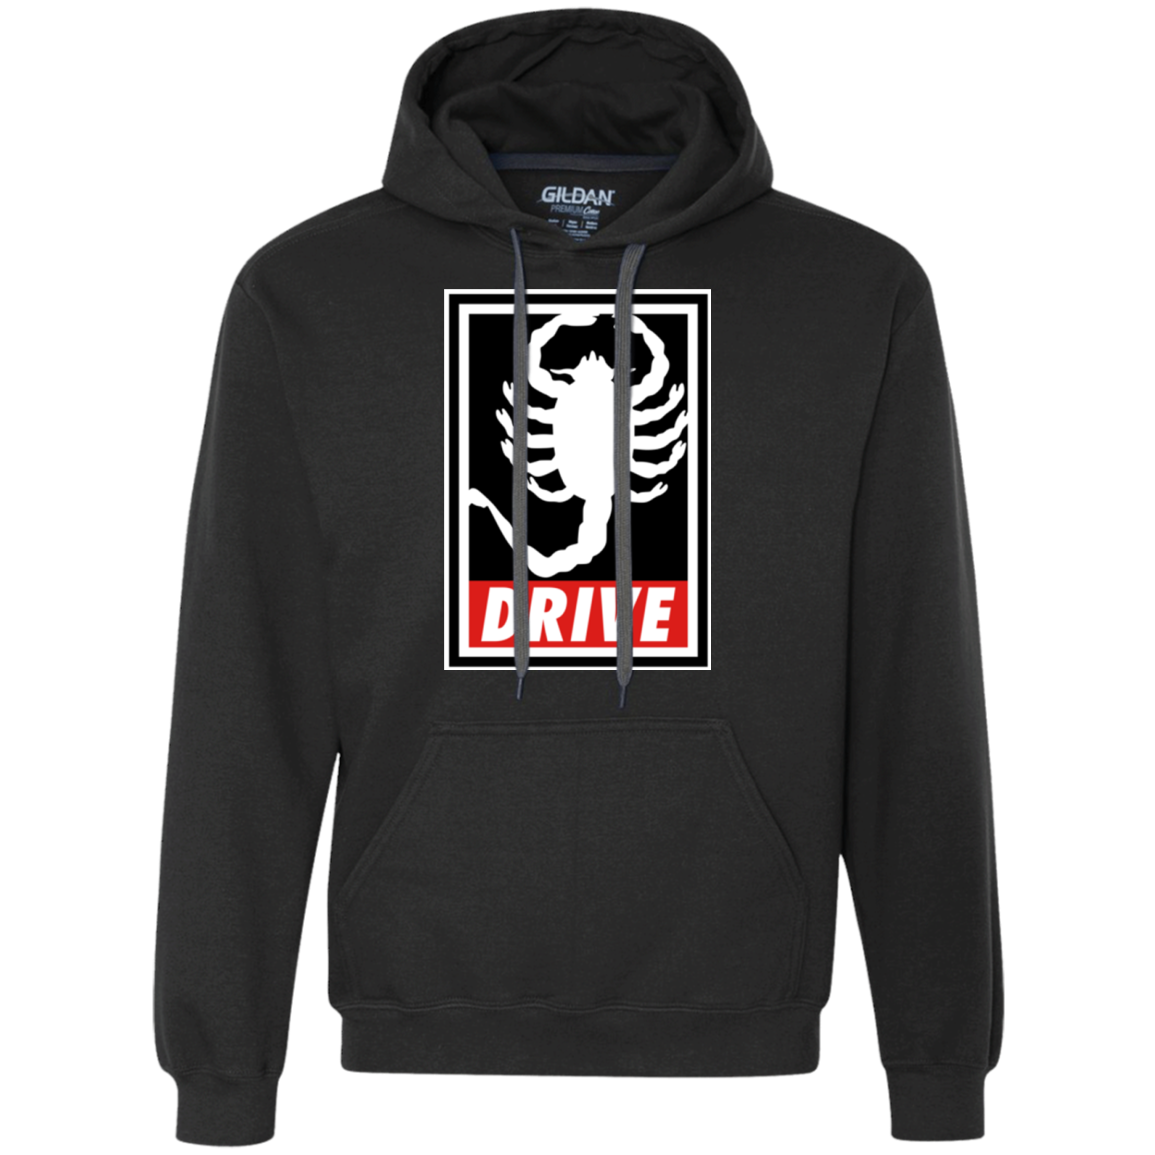 Obey and drive Premium Fleece Hoodie